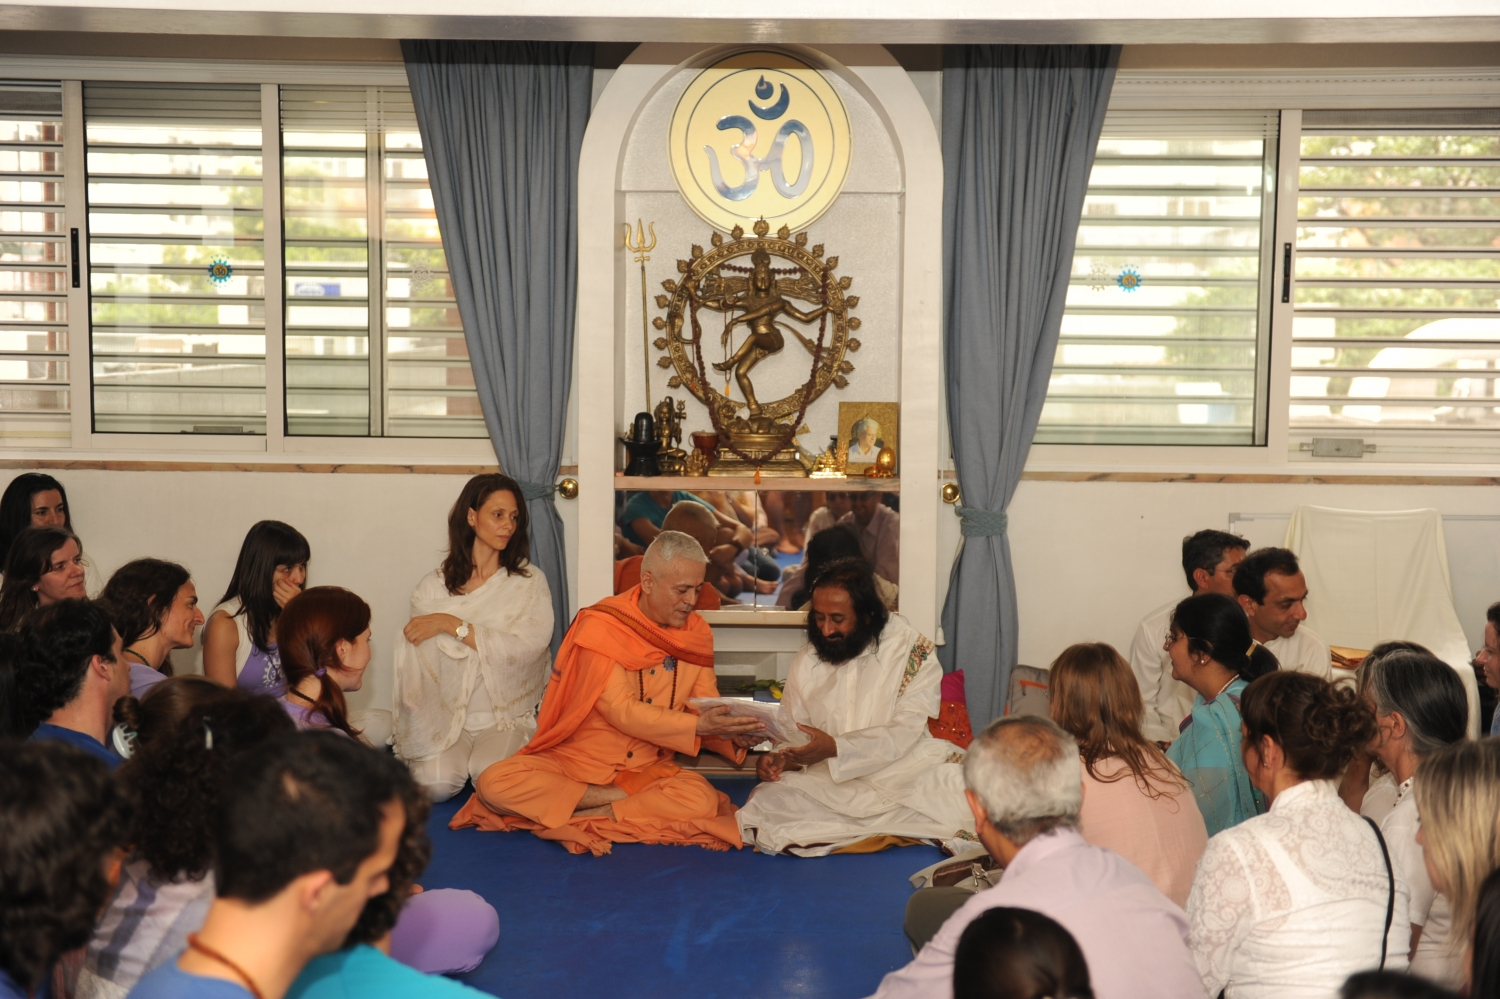 Visit of Shrí Shrí Ravi Shankar at the Headquarters of the Portuguese Yoga Confederation